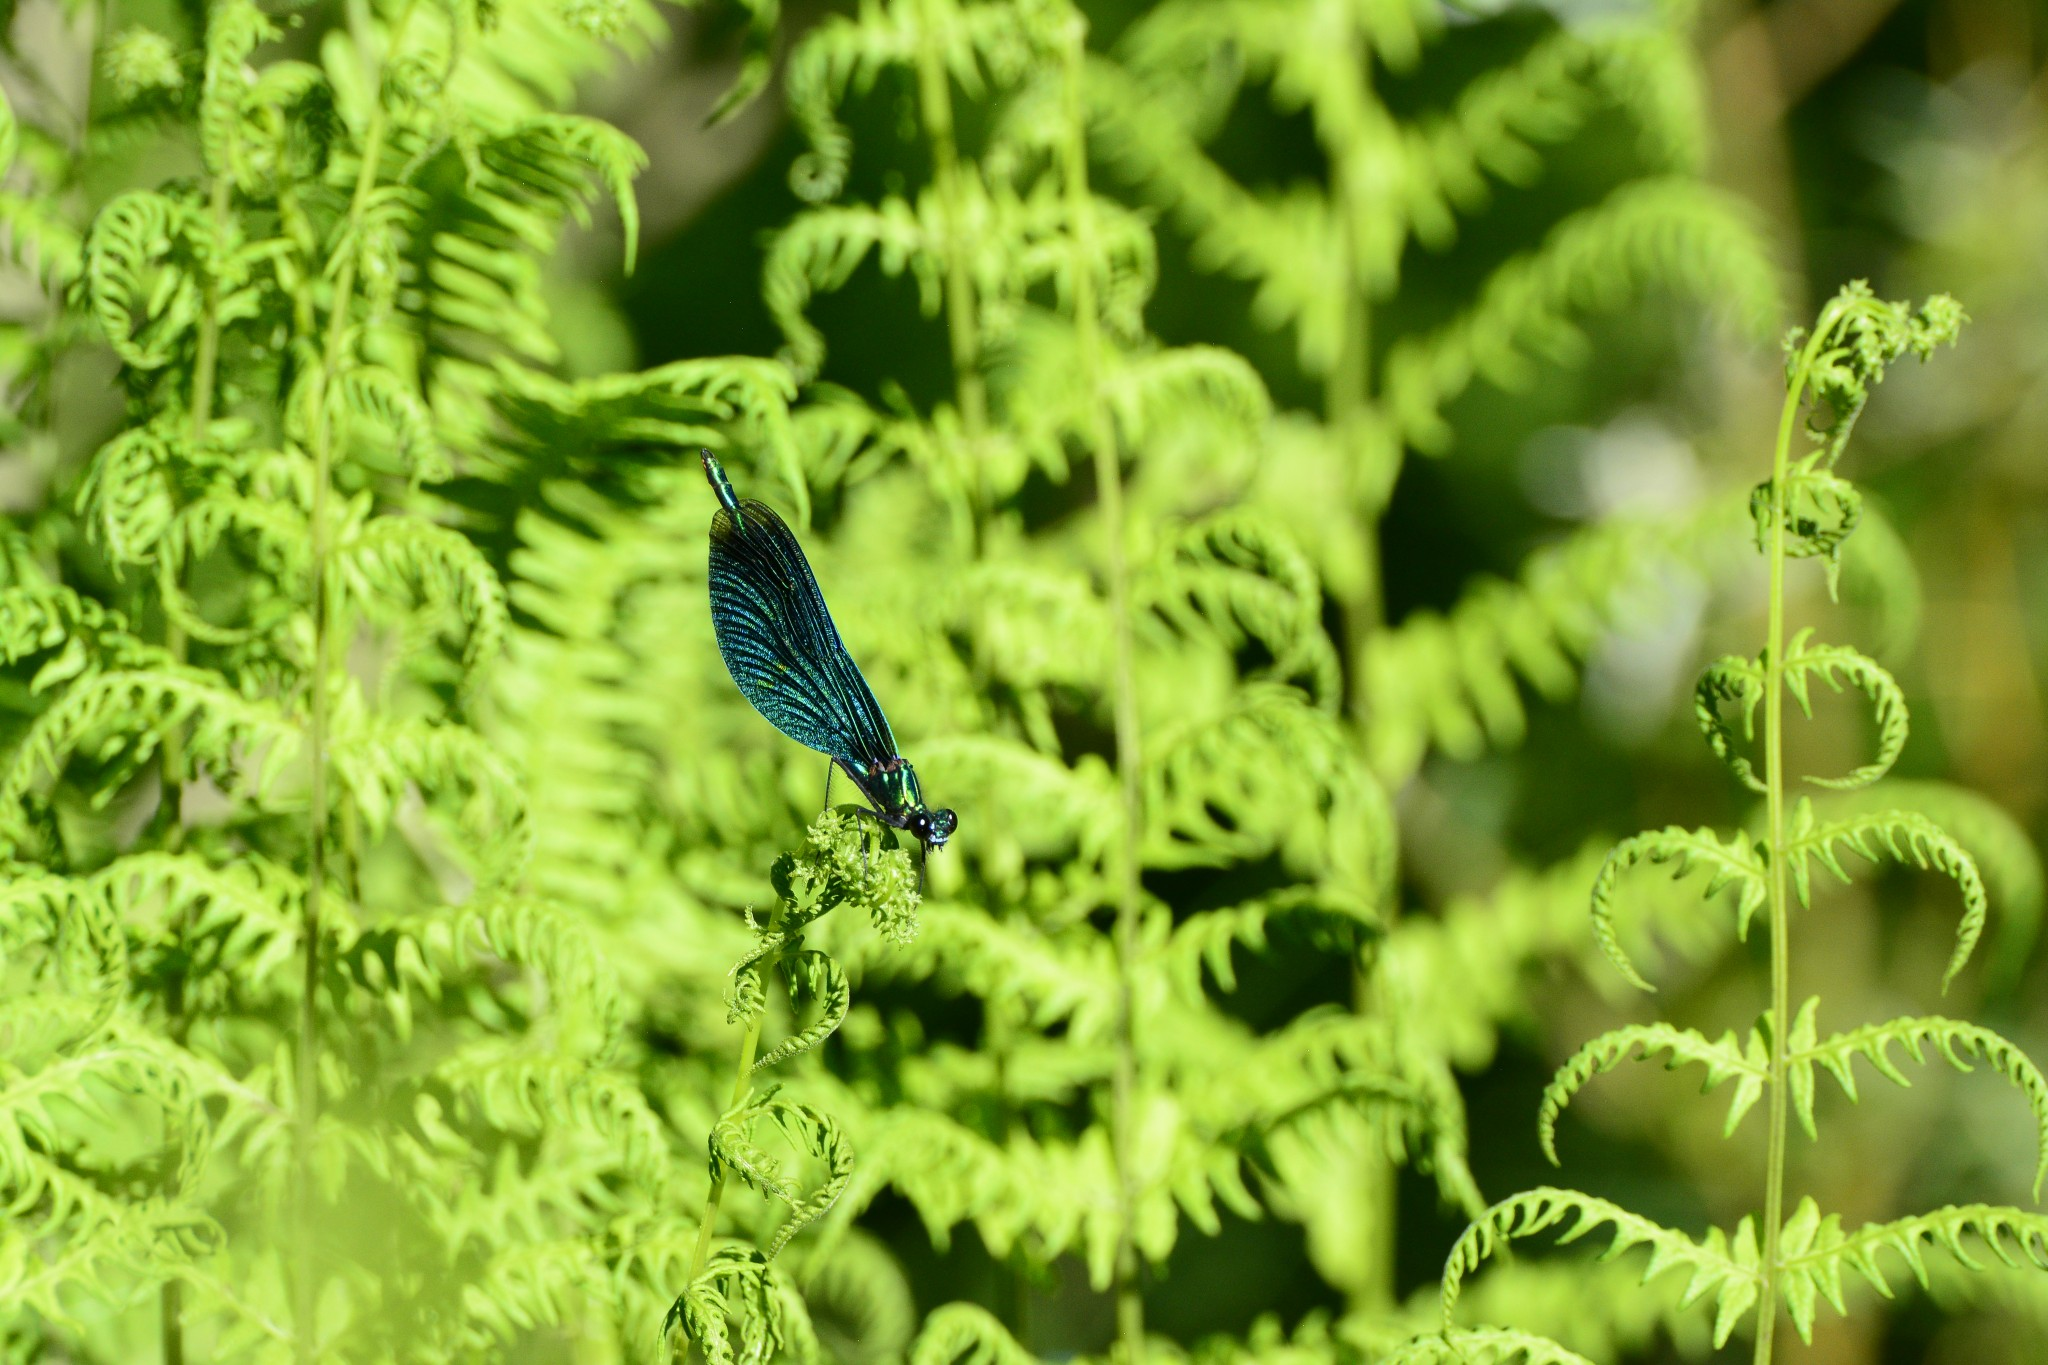 dryopteris_filix-mas plants dragonfly